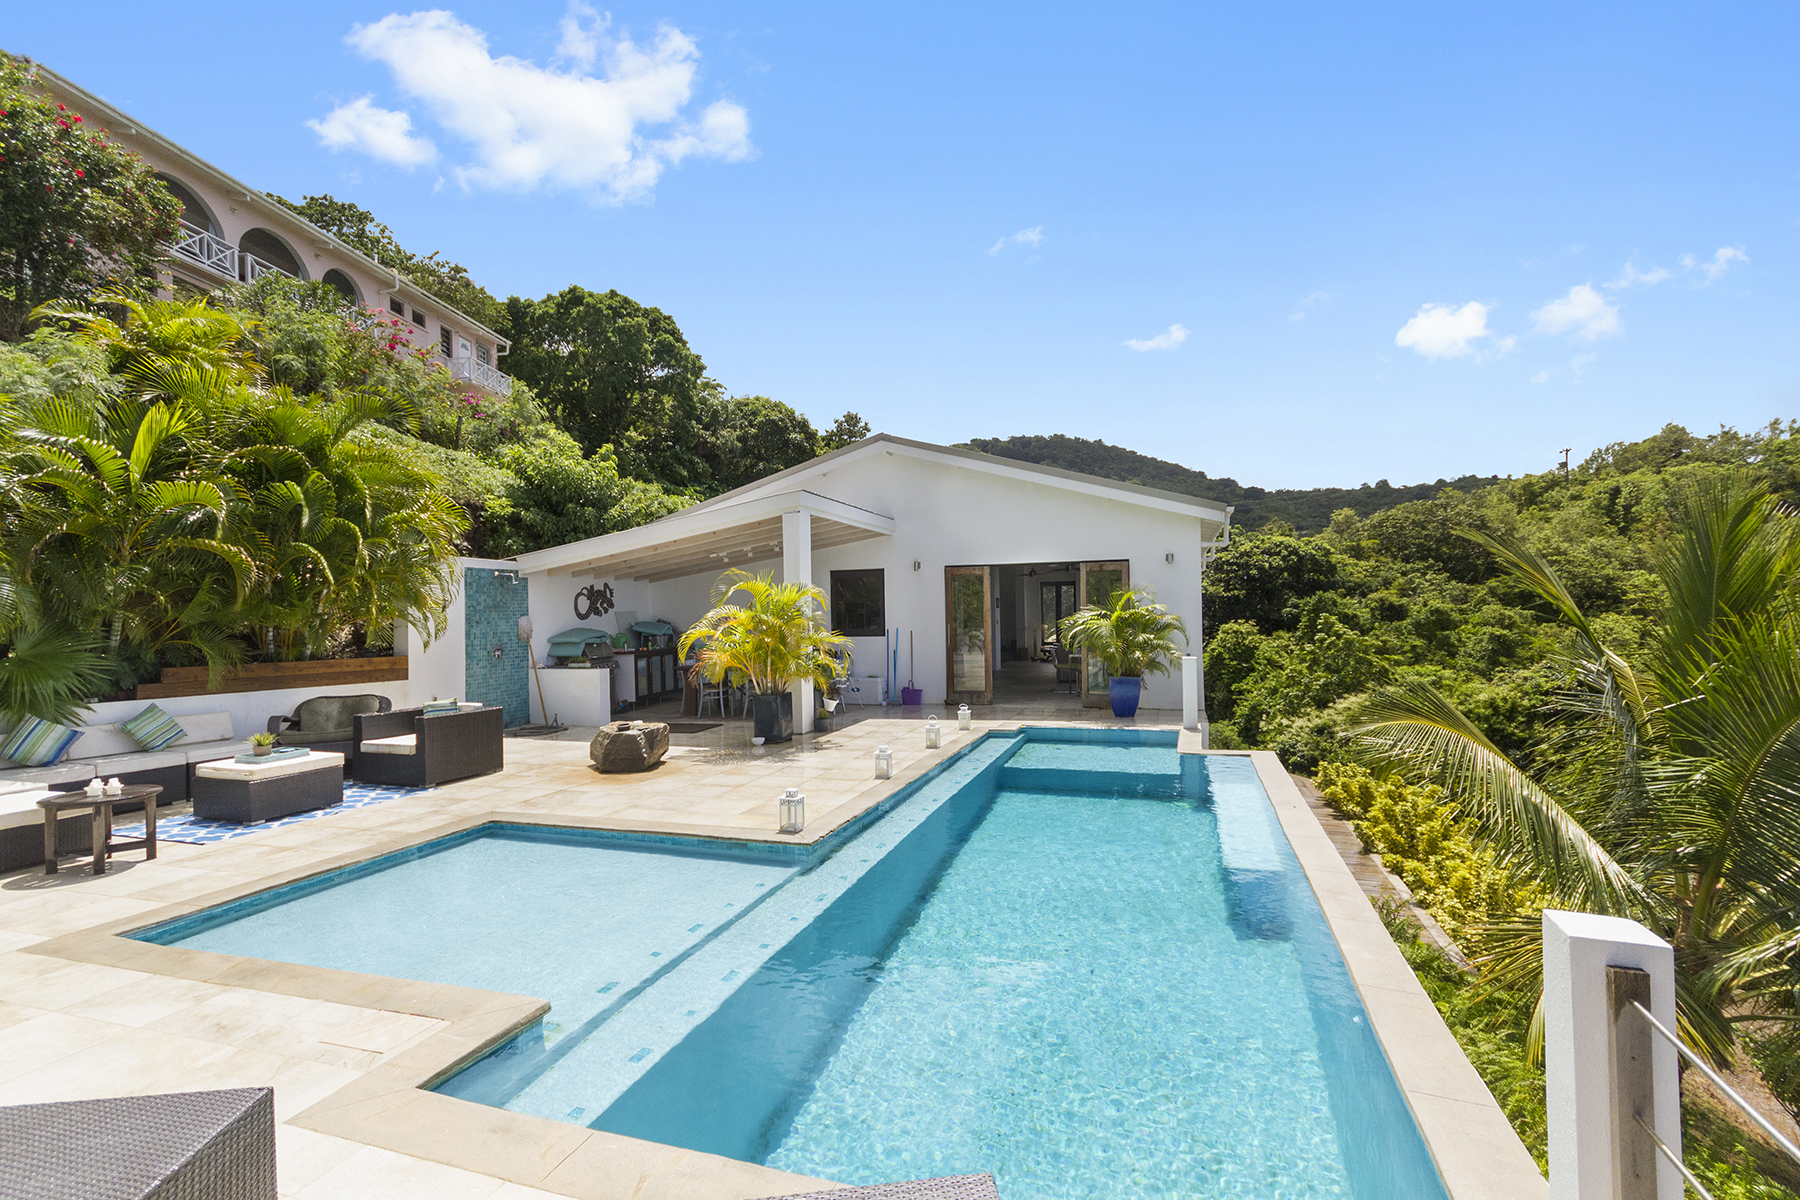 Single Family Home for Sale at Butu Mountain Villa Other Tortola, Tortola British Virgin Islands